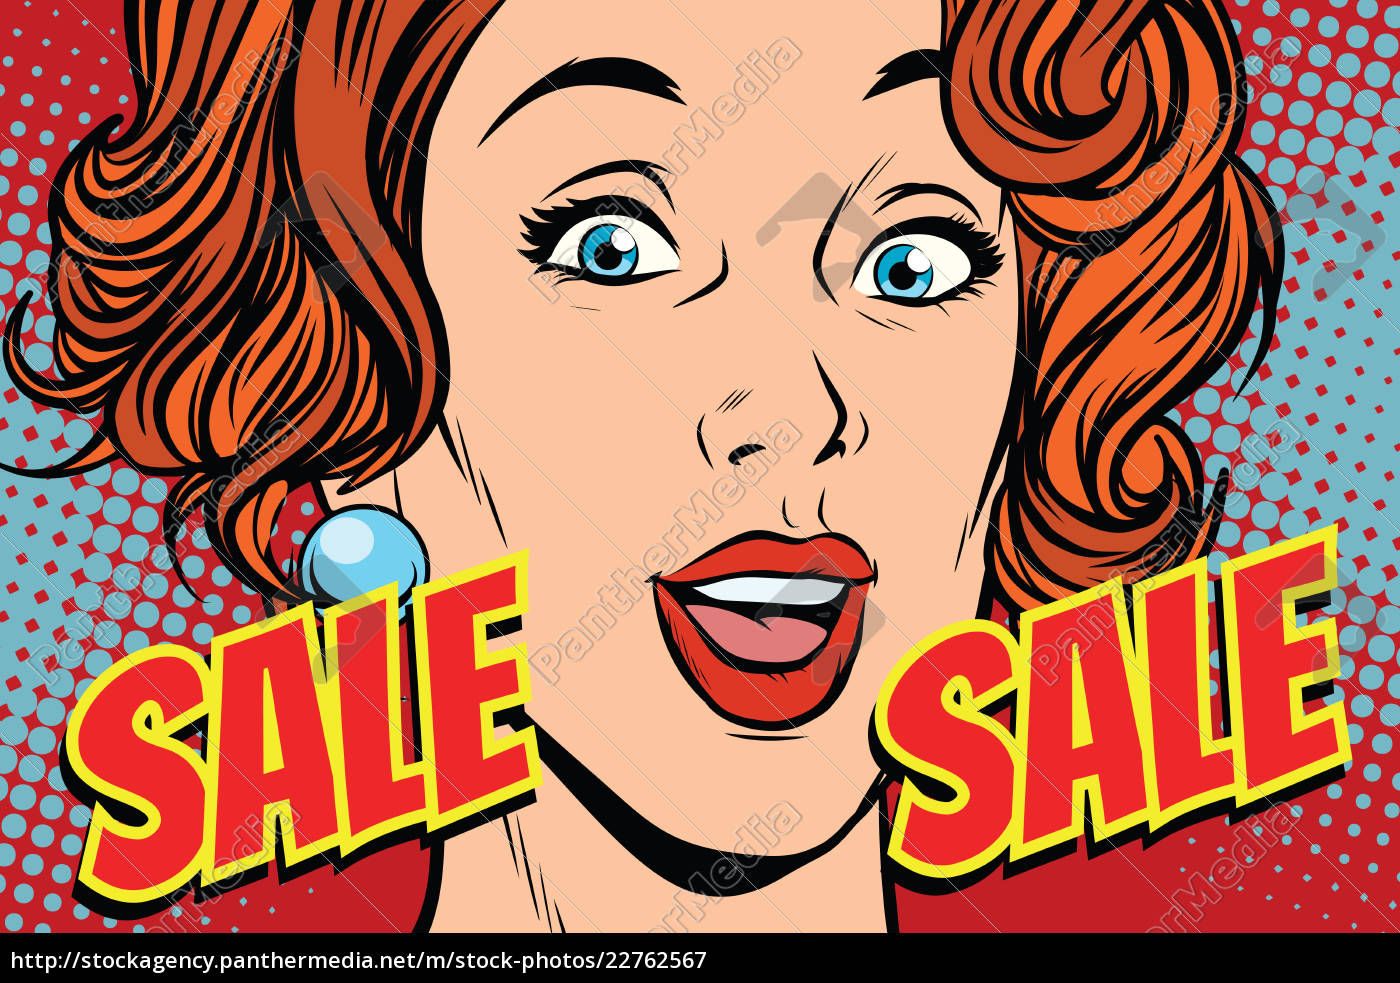 sale, comic, text, pop, art, woman - 22762567